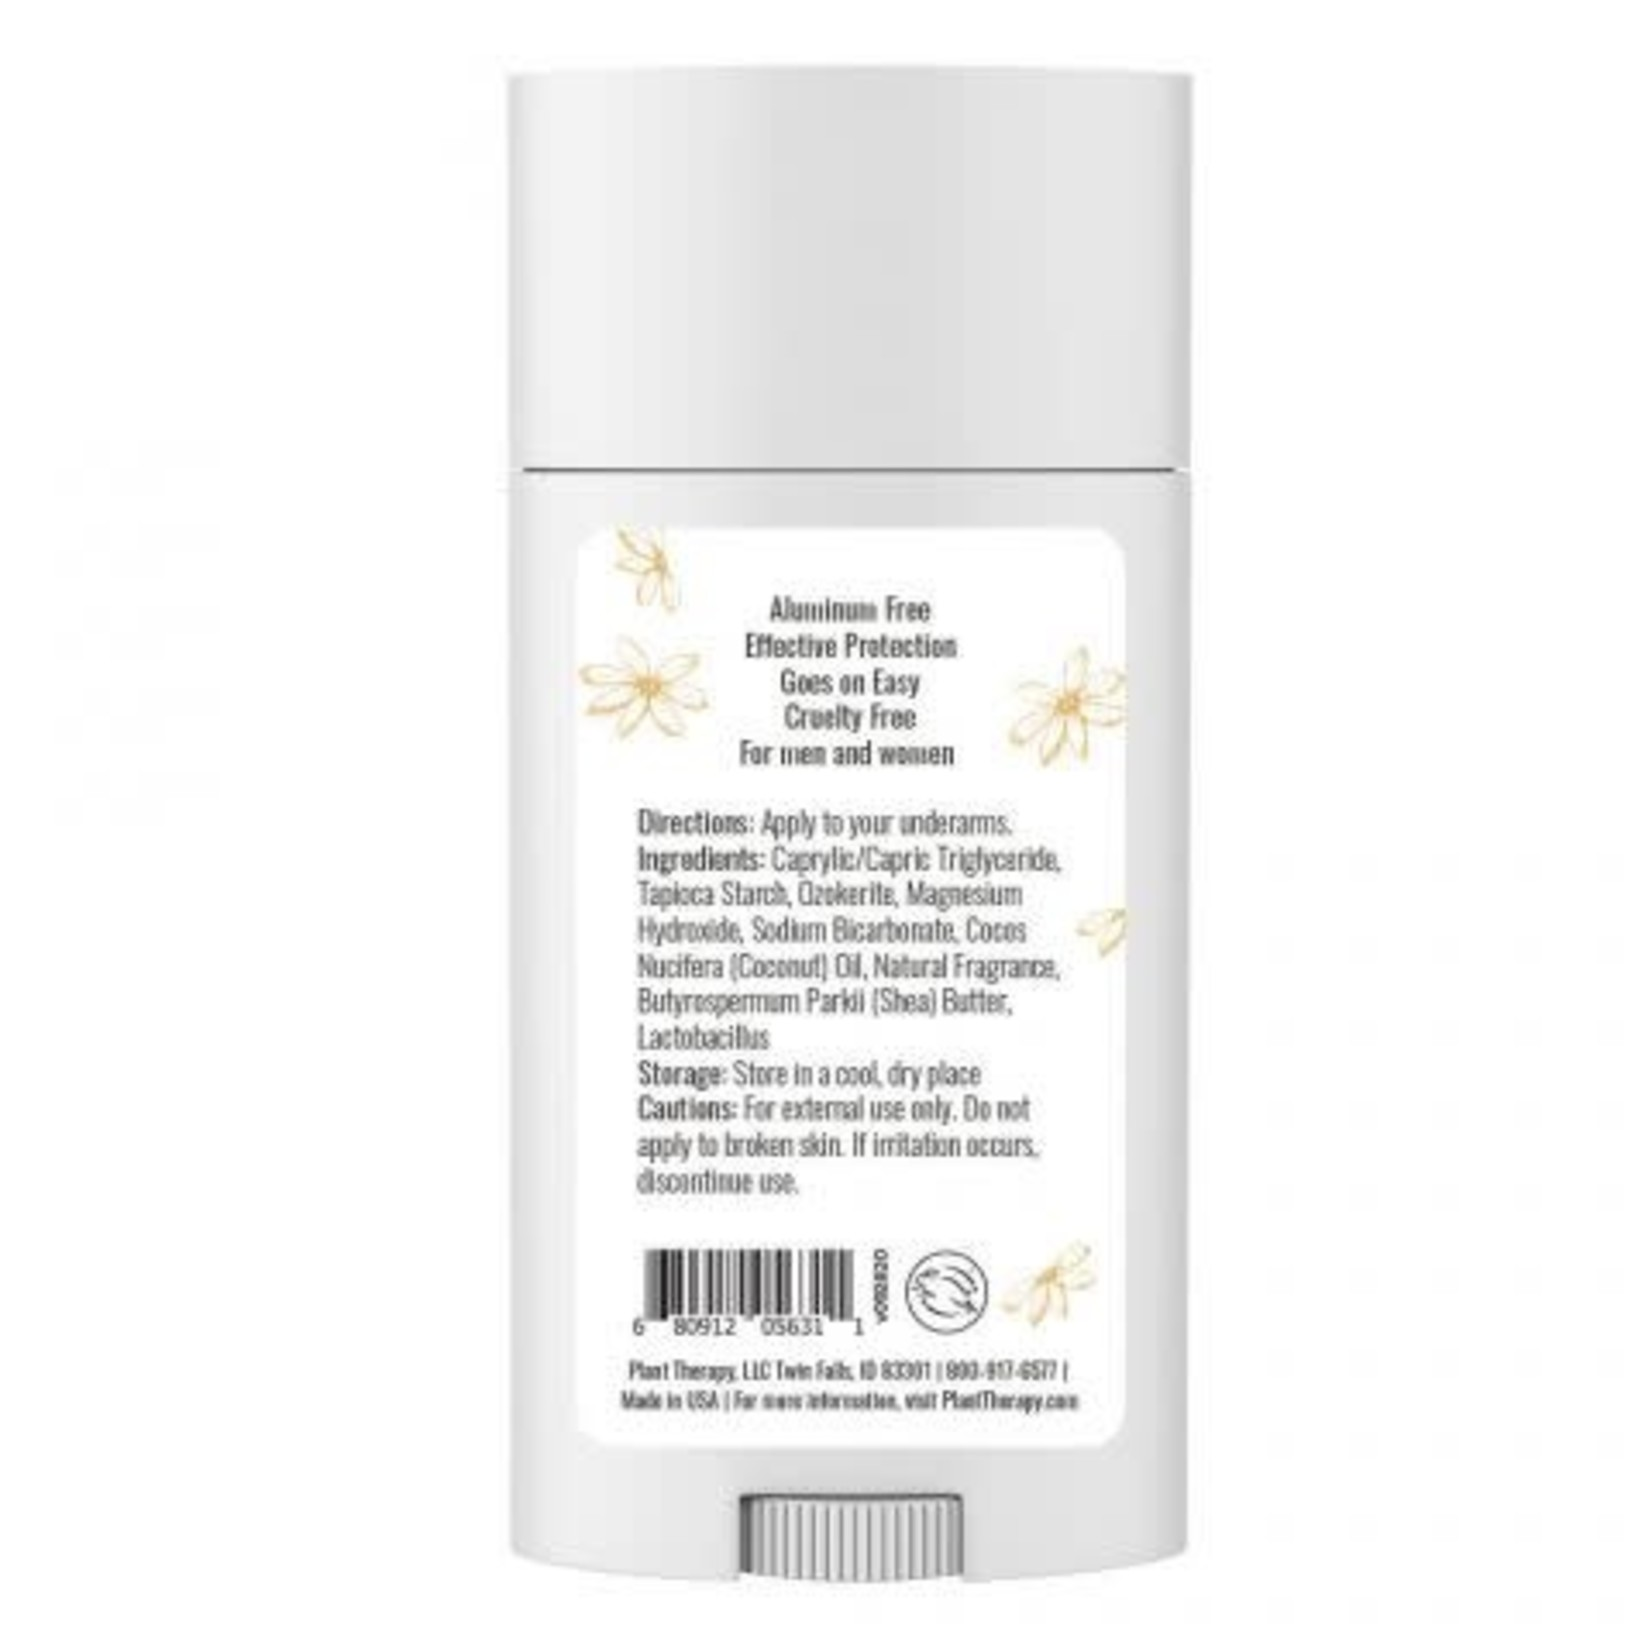 Plant Therapy PT Natural Deodorant 2.65oz